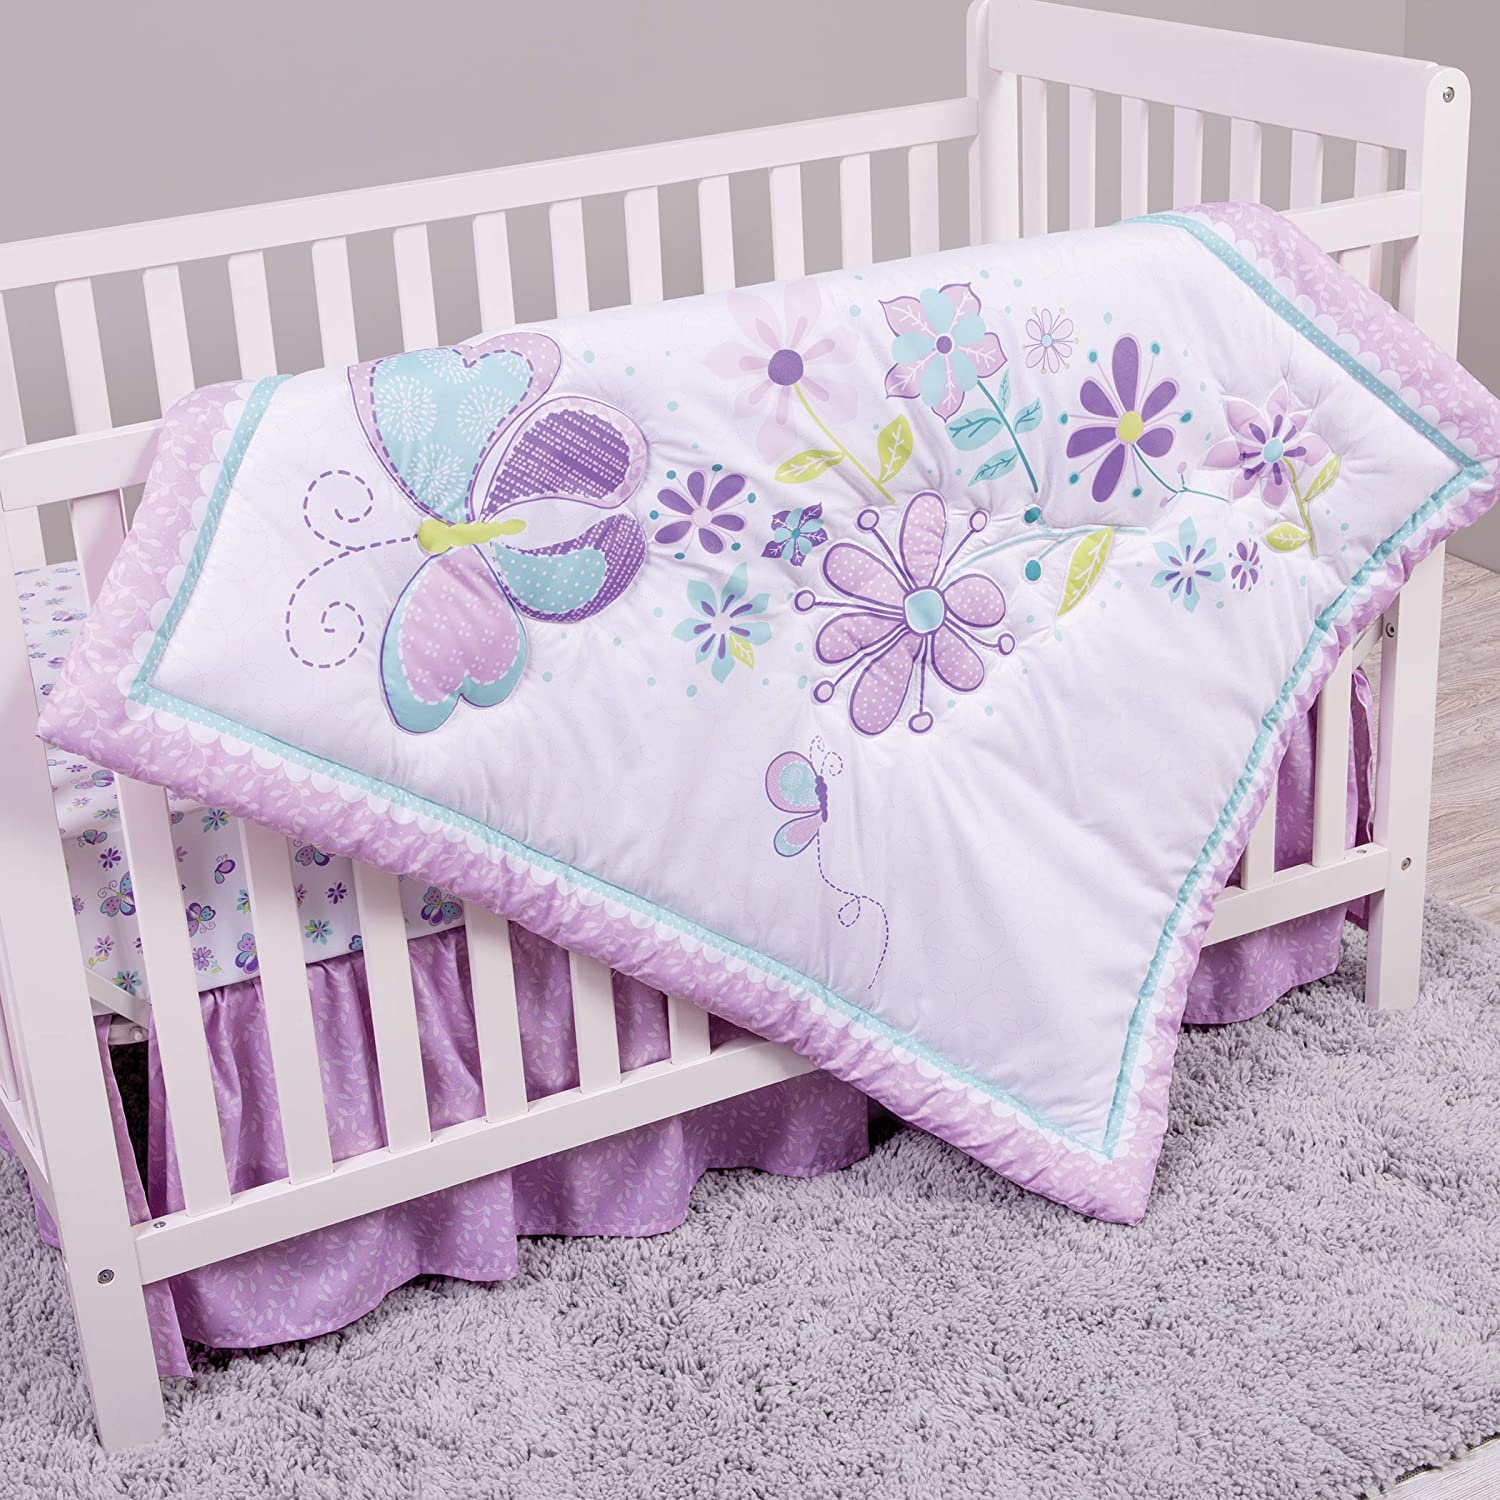 Sammy & Lou Butterfly Meadow 4 Piece Crib Bedding Set